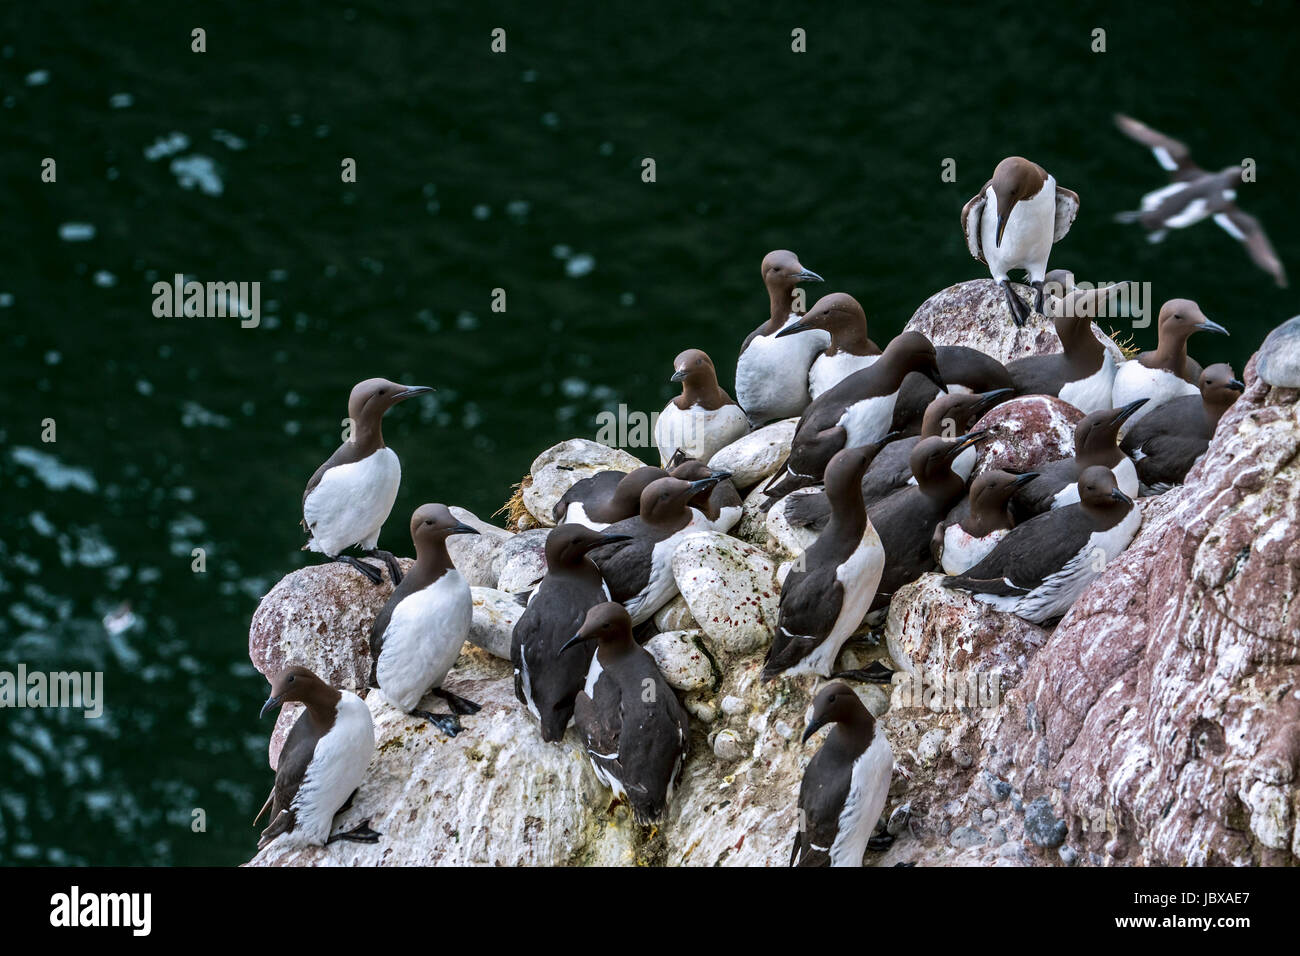 Densely packed breeding colony of common murres / common guillemots (Uria aalge) nesting in spring on rock ledges in sea cliff face, Scotland, UK Stock Photo